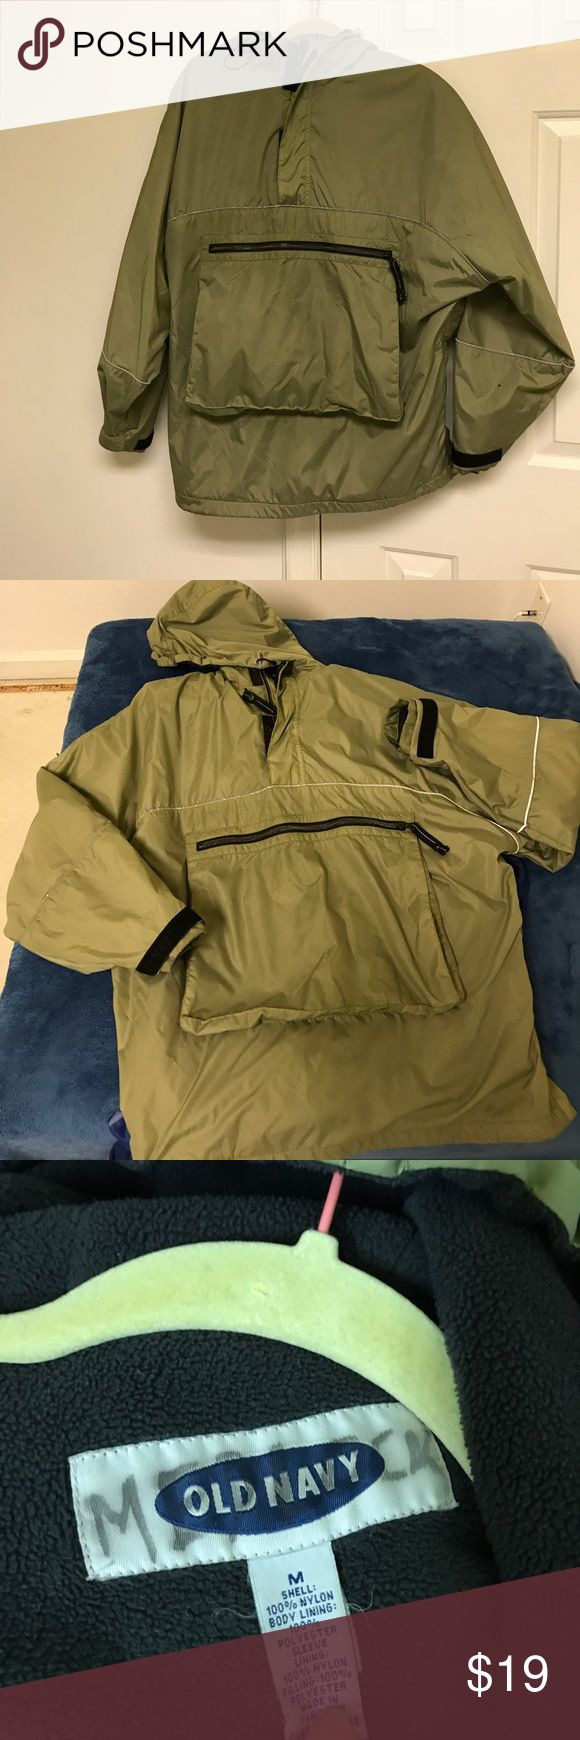 Old Navy Men's or tall youth jackets M Insulated, gently used  size M . Measures 52 inches under the arm and 30 inches long. old Nsvy Jackets & Coats Bomber & Varsity